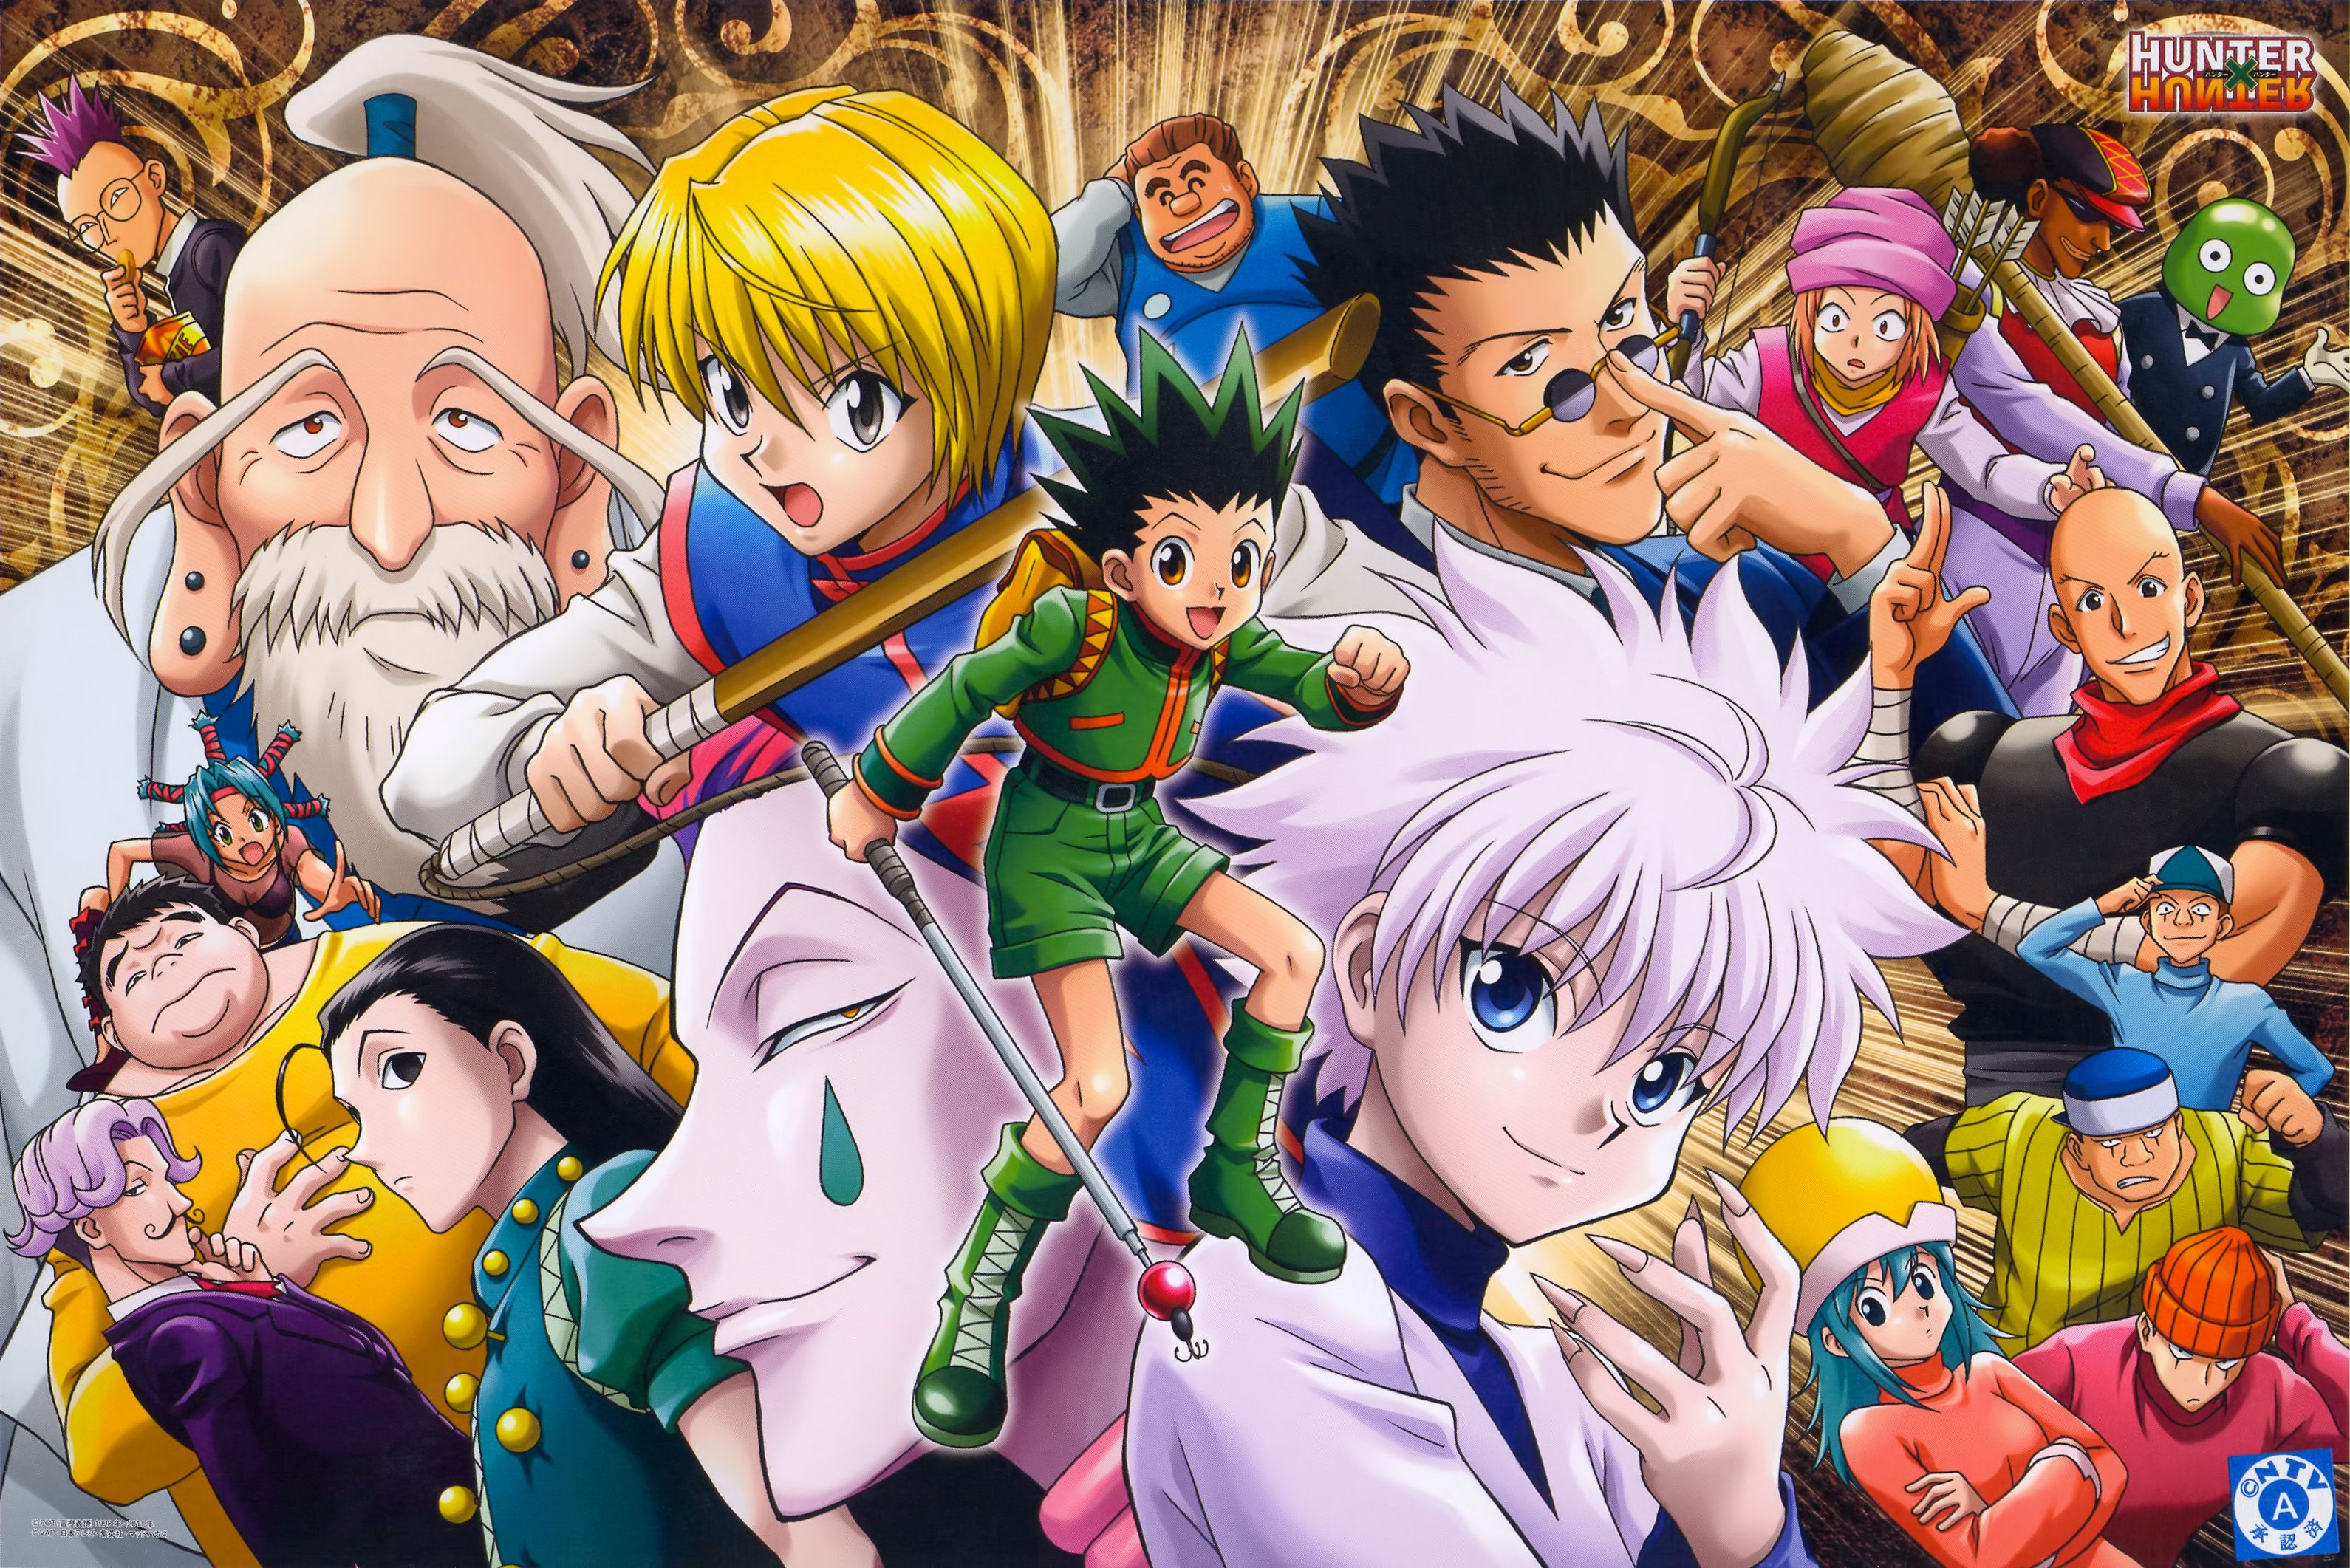 Download hunter x hunter wallpaper (anime wallpaper hd) 1.1 latest version apk by creative walls for android free online at apkfab.com. Hunter x Hunter Anime HD Wallpaper Animation Wallpapers ...